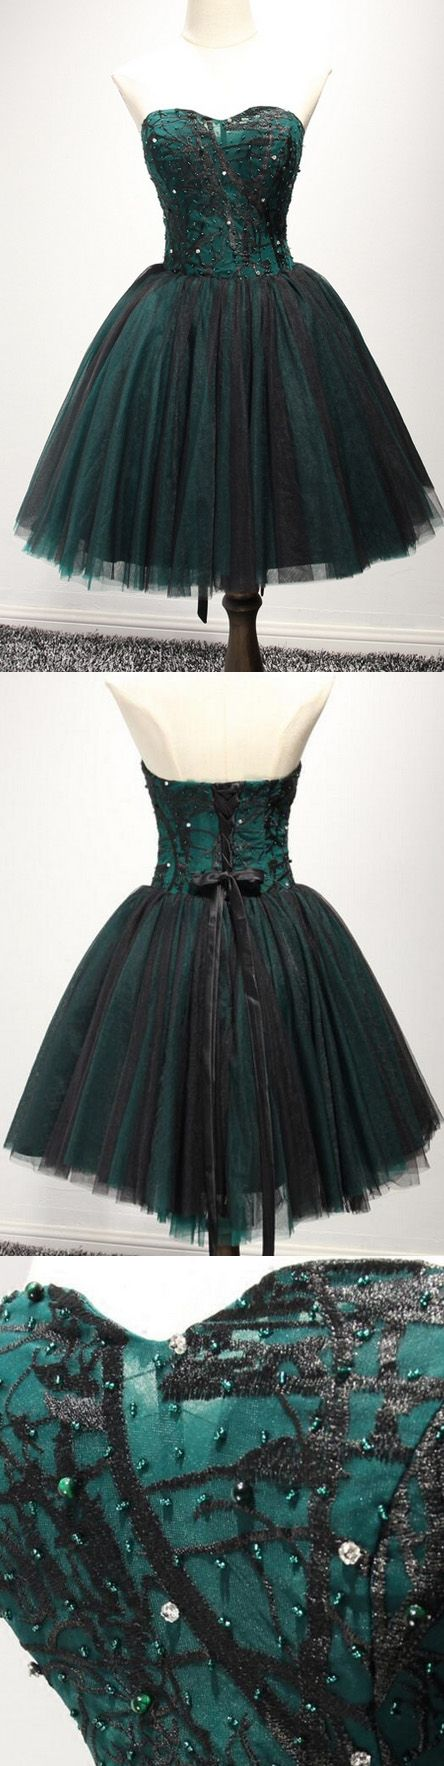 Short Prom Dresses, Lace Prom Dresses, Green Prom Dresses, Prom Dresses Short, Discount Prom Dresses, Sweetheart Prom Dresses, Dark Green Prom Dresses, Prom Short Dresses, Green Homecoming Dresses, Short Homecoming Dresses, Green Lace dresses, Dark Green dresses, Lace Up Prom Dresses, Beaded/Beading Party Dresses, Sweetheart Homecoming Dresses, Sleeveless Homecoming Dresses